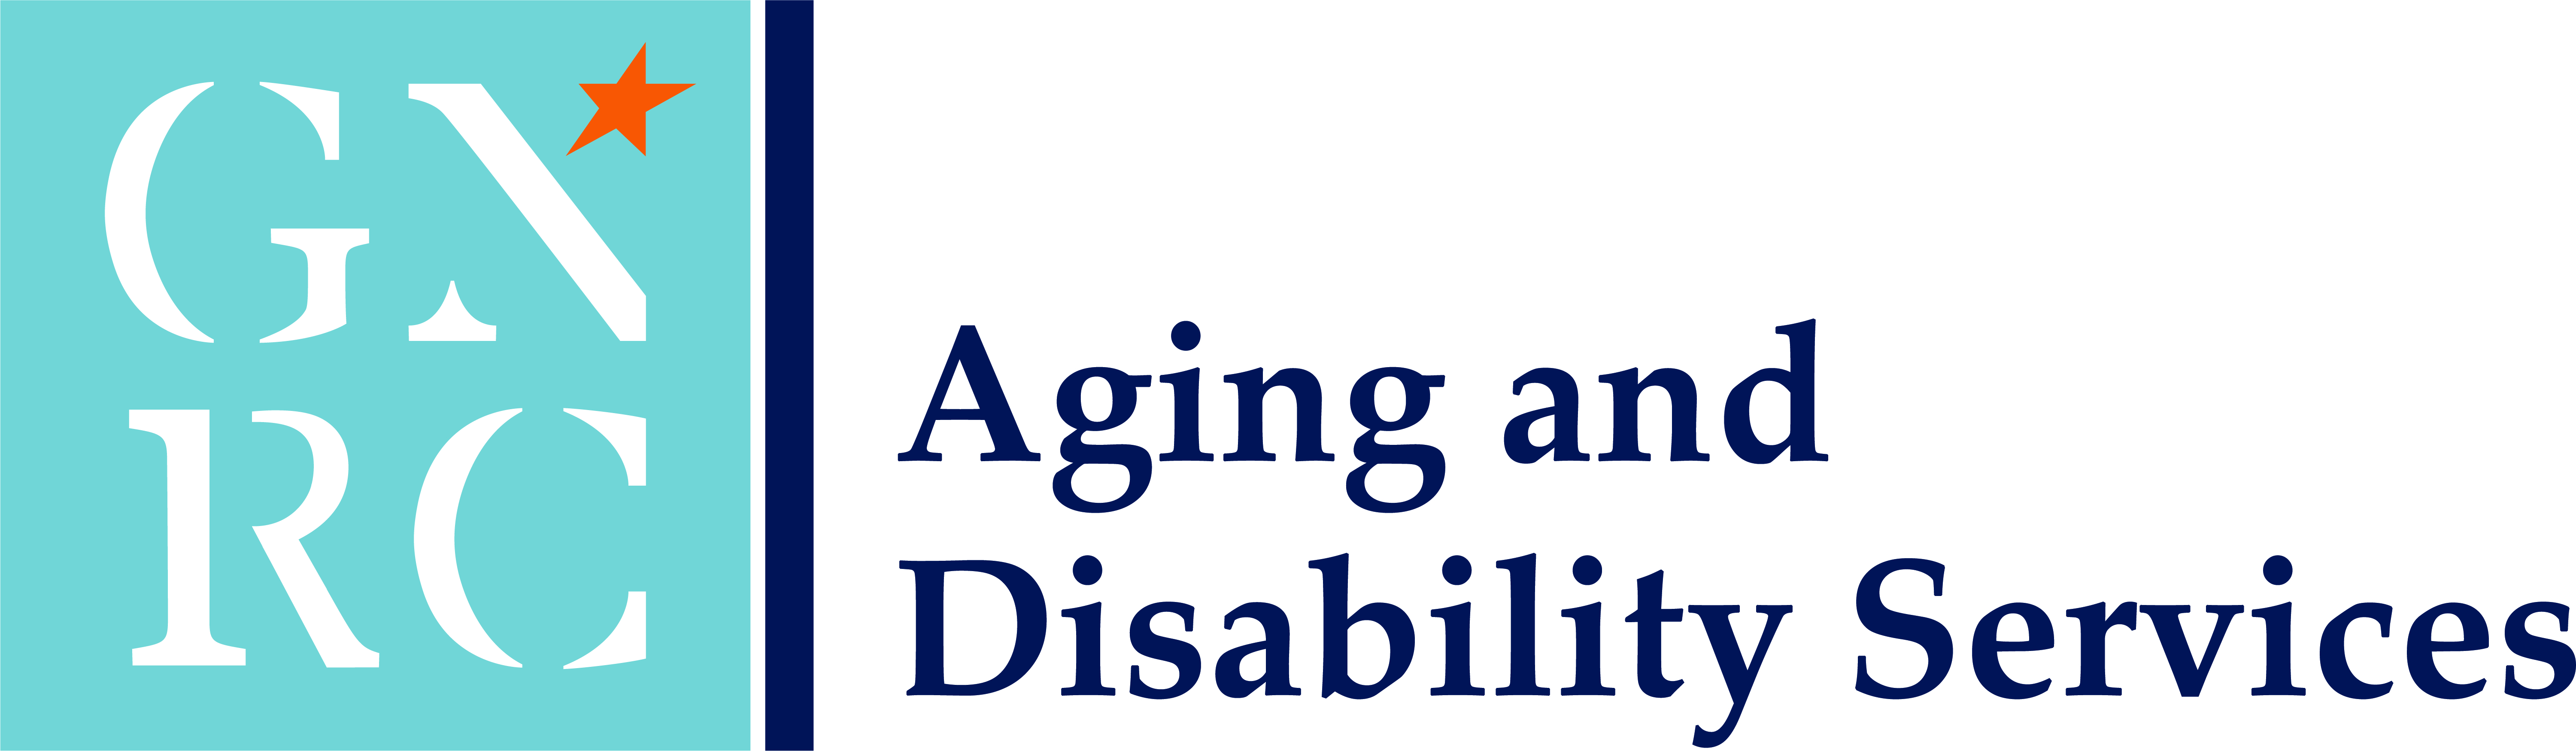 GNRC Aging and Disability Services